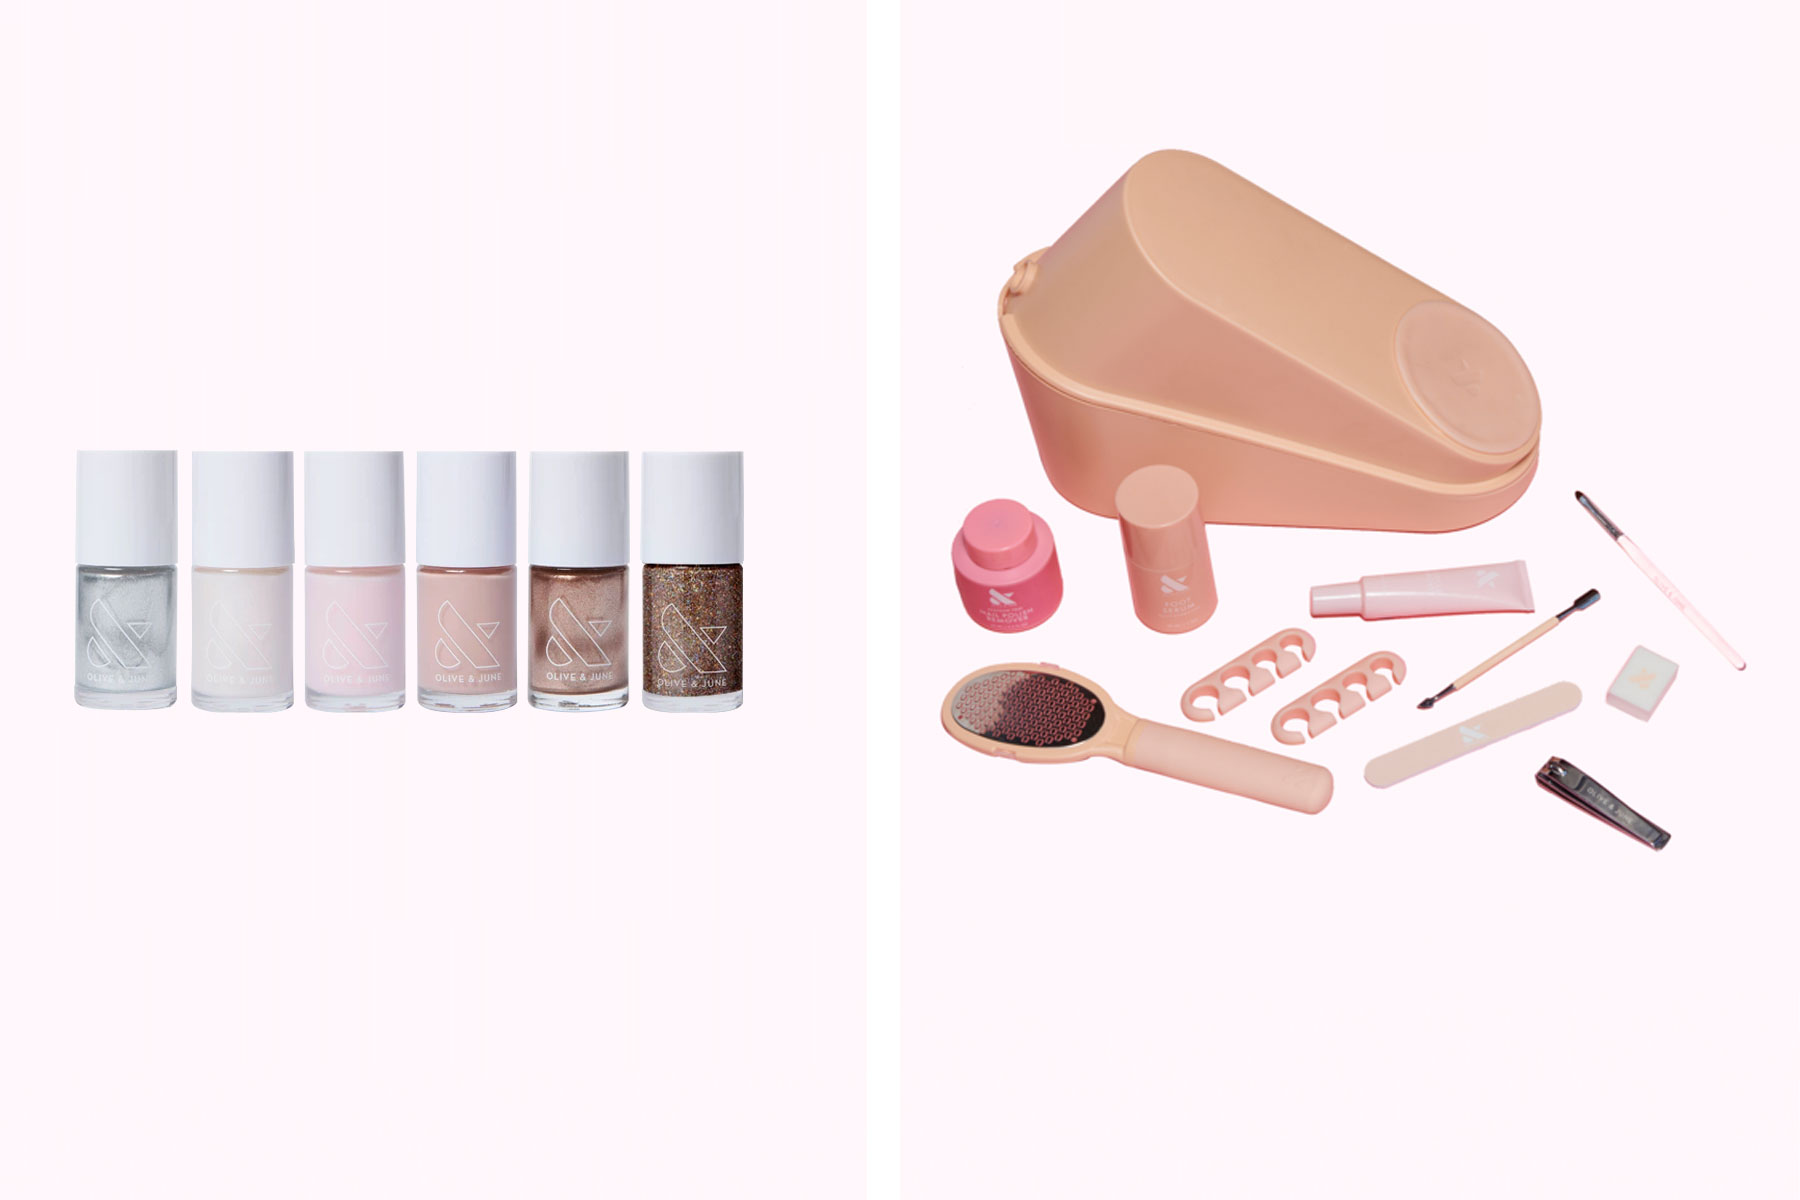 Nail polish and pedicure kit